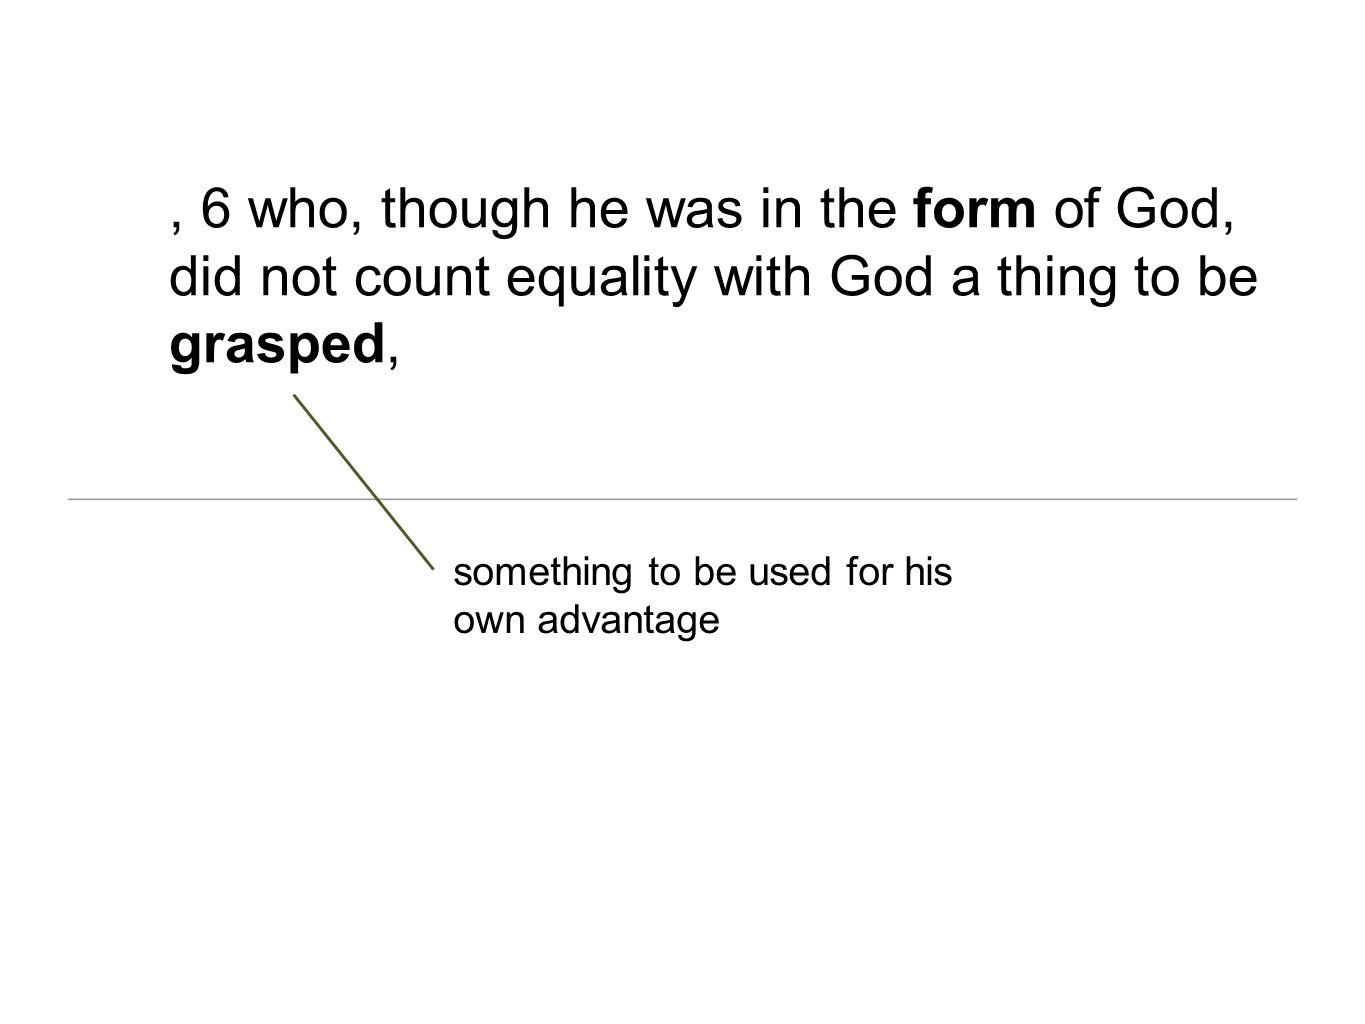 , 6 who, though he was in the form of God, did not count equality with God a thing to be grasped,